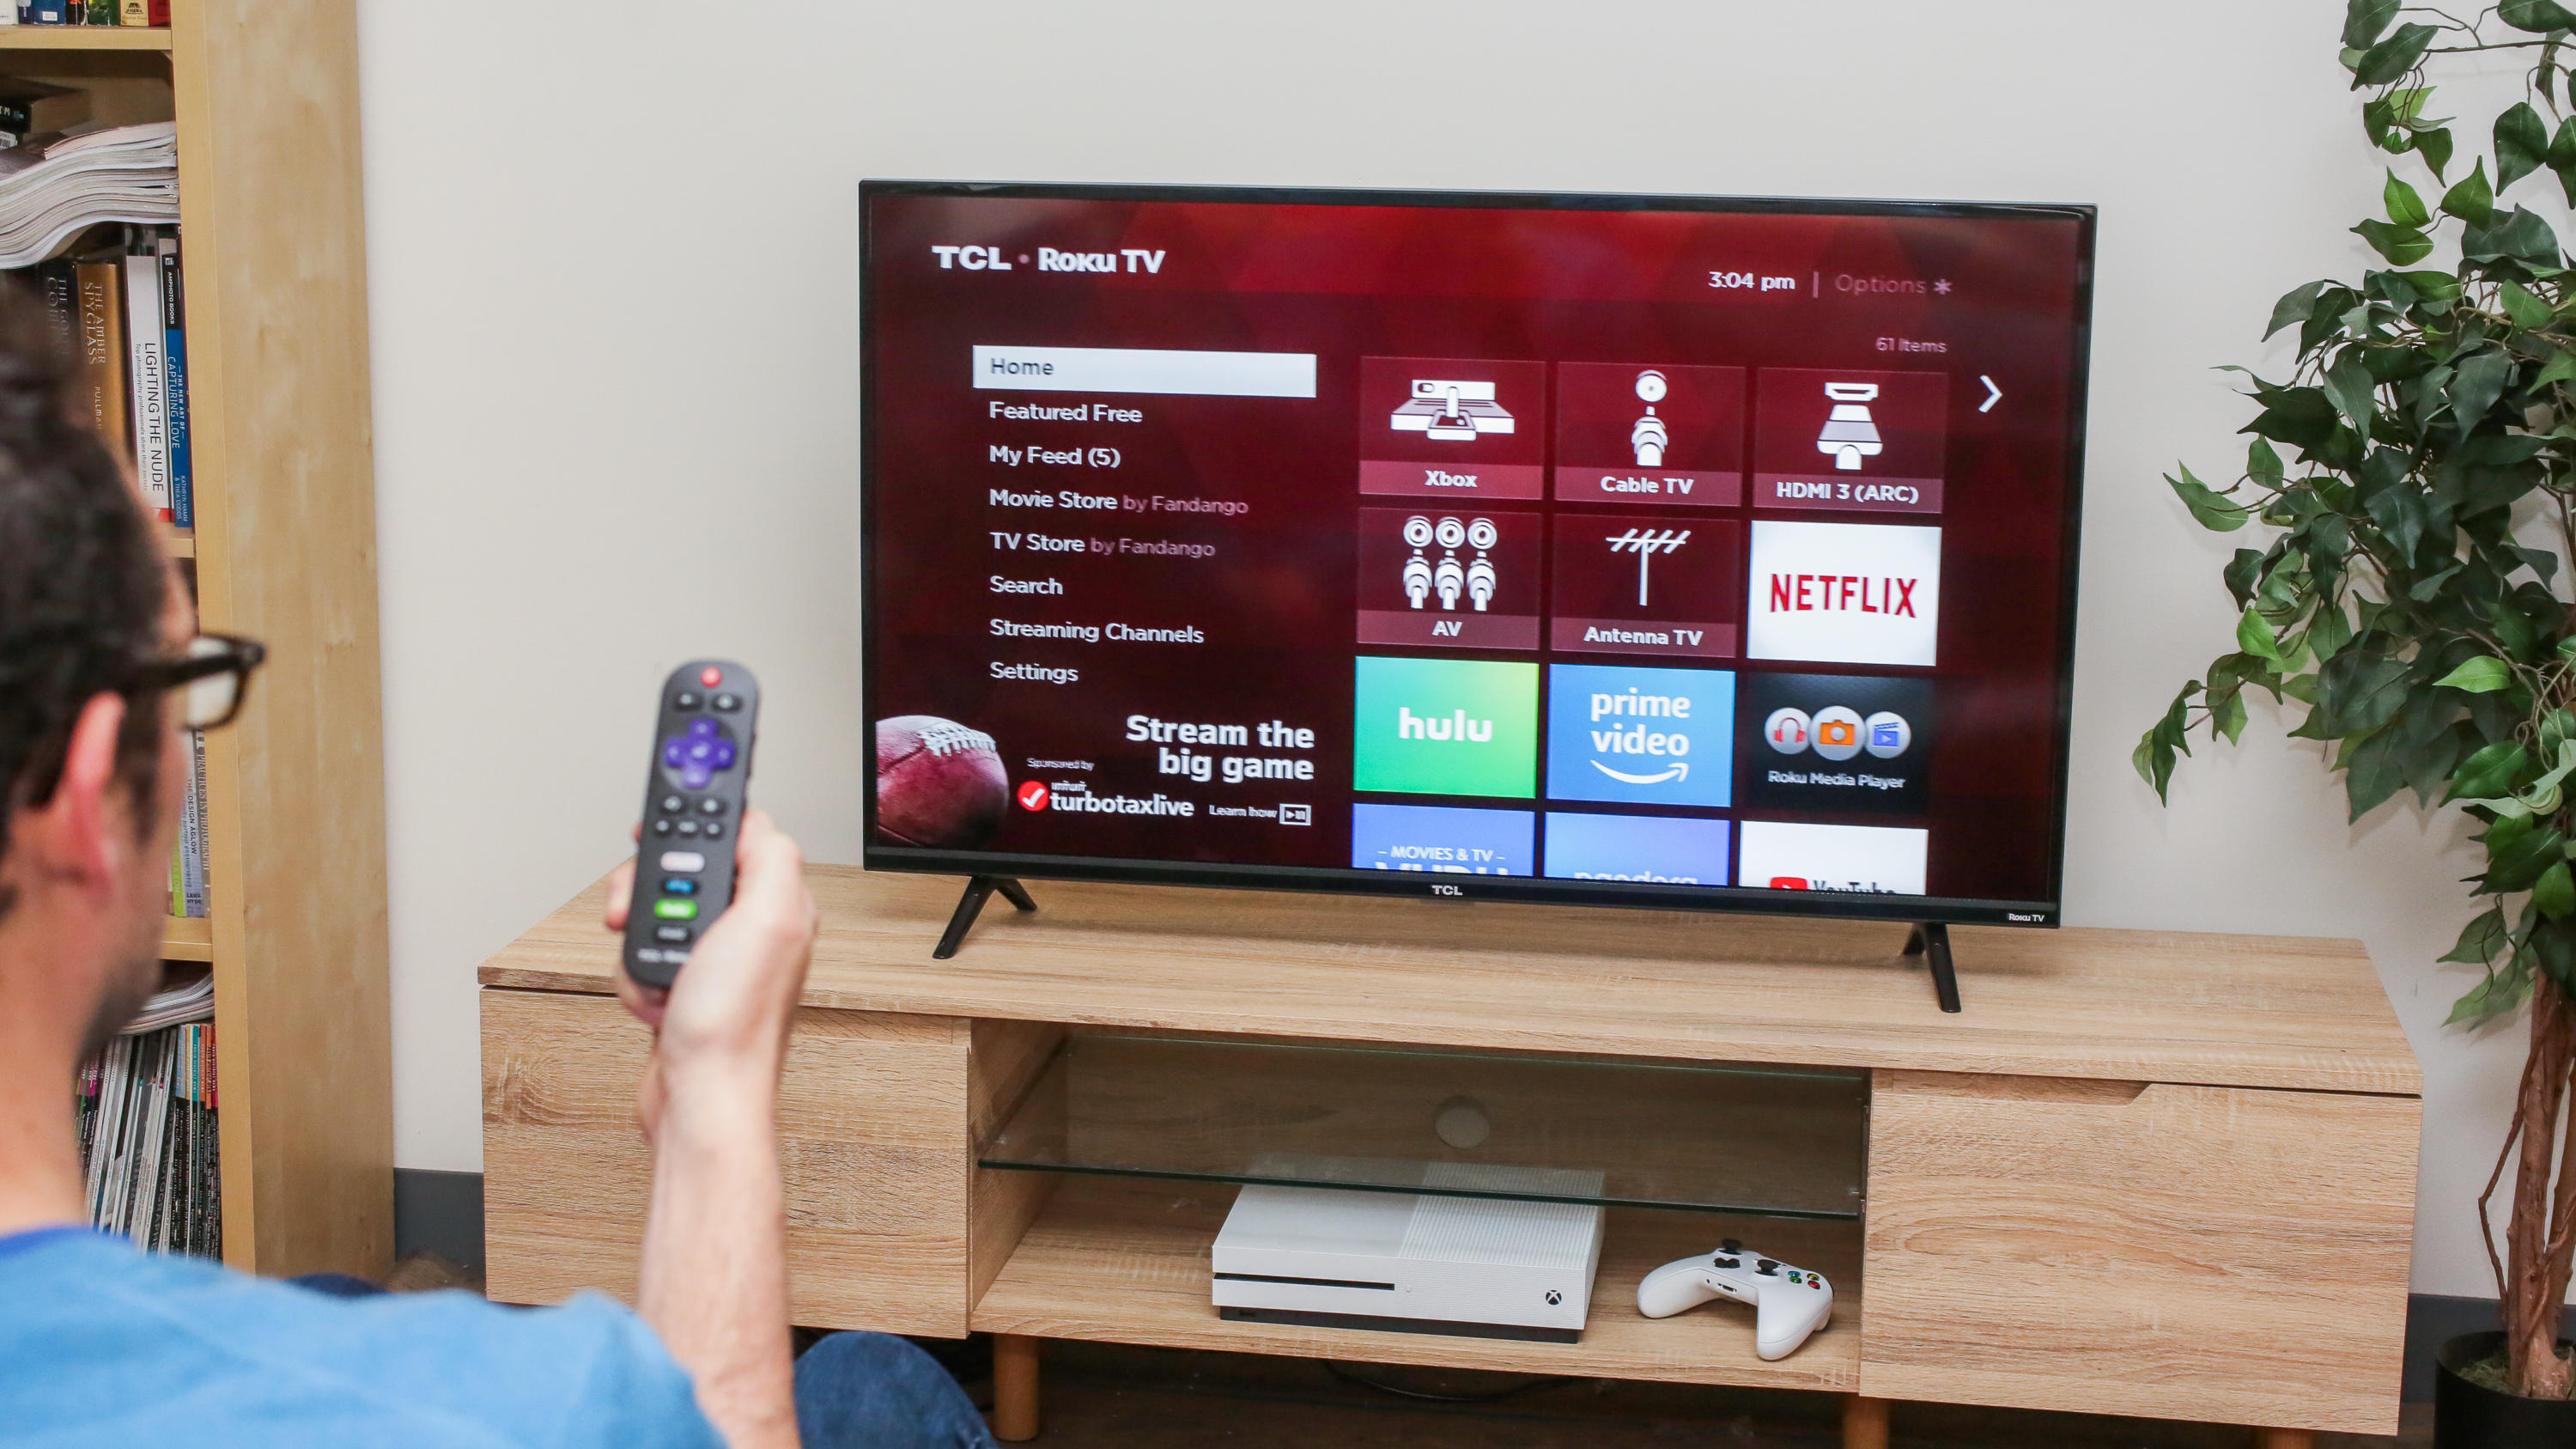 23 tcl s325 s425 series | Best TV for 2021 - CNET | The Paradise